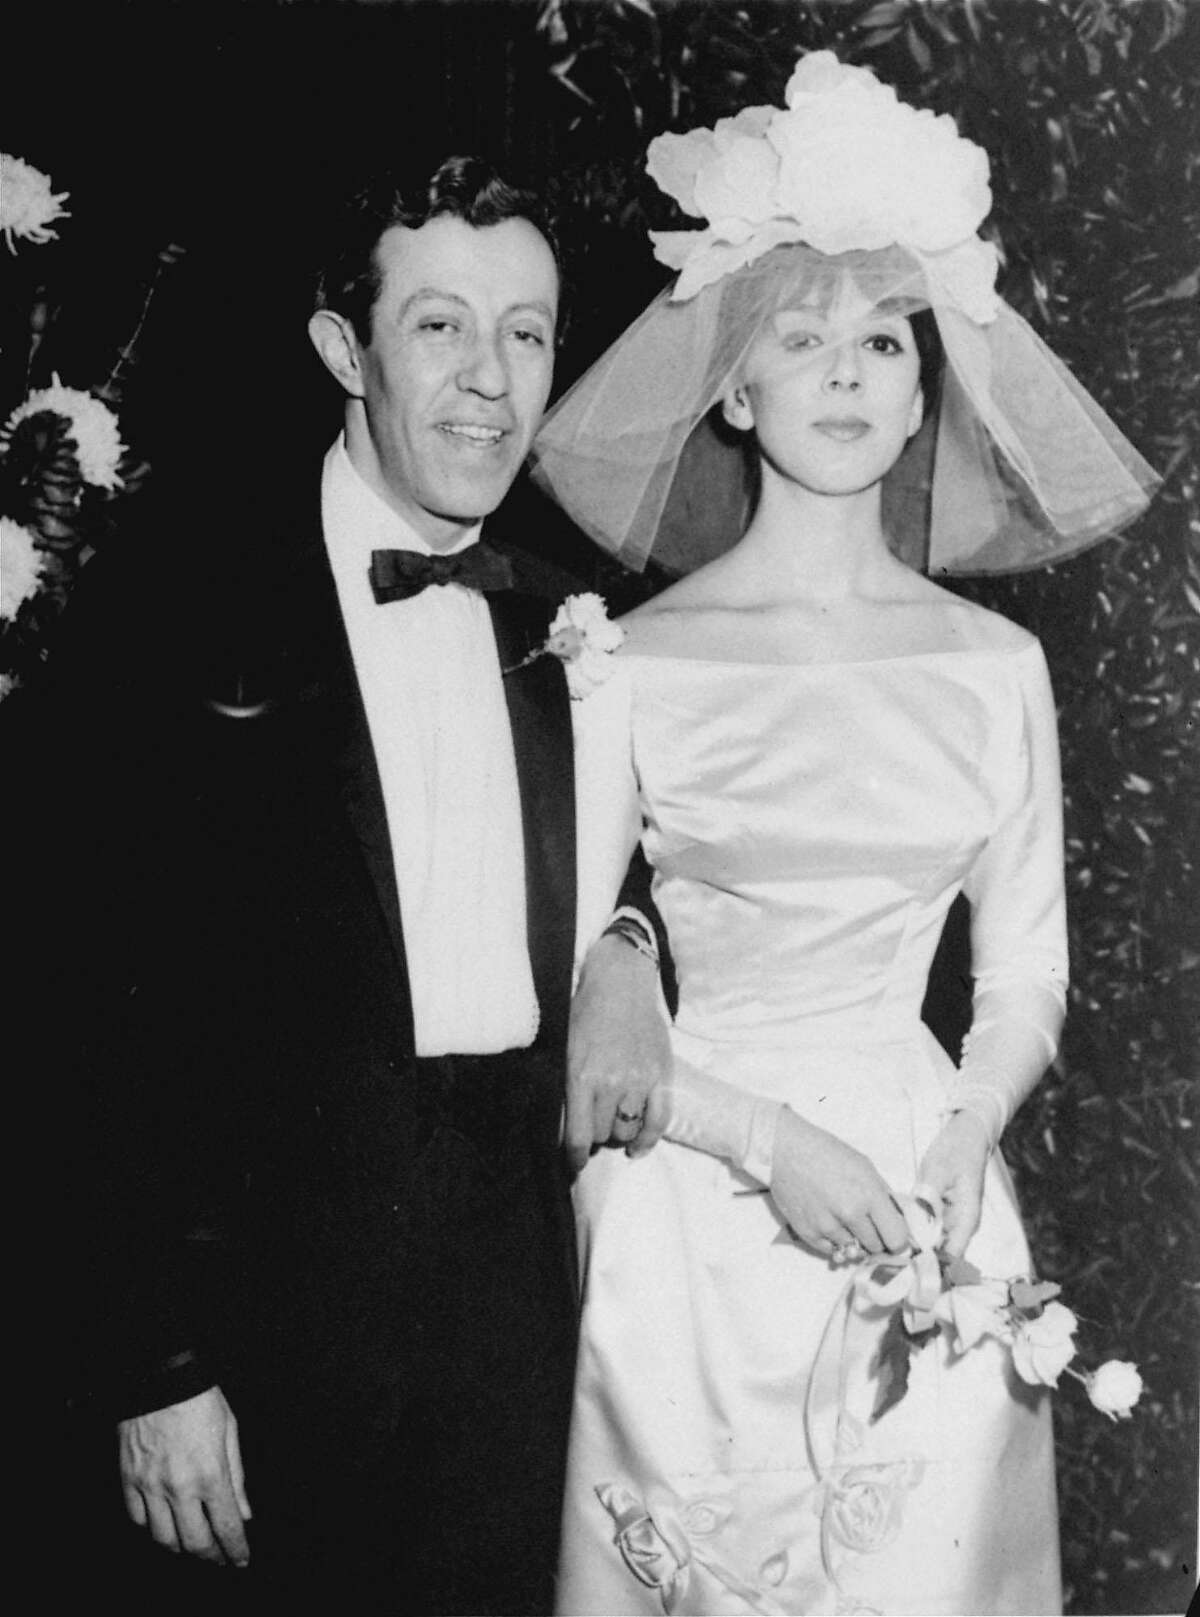 """** FILE ** Broadway playwright Adolph Green and his bride, 26 year old actress Phyllis Newman, are shown after their wedding in this Jan. 31, 1960 file photo in New York. Green, a lyricist whose six-decade collaboration with Betty Comden helped create such joyous stage celebrations of New York as """"On the Town'' and """"Wonderful Town'' as well as the classic movie musical """"Singin' in the Rain,'' has died late Wednesday, Oct. 23, 2002 at his home in Nw York. He was 87. (AP Photo/File)"""